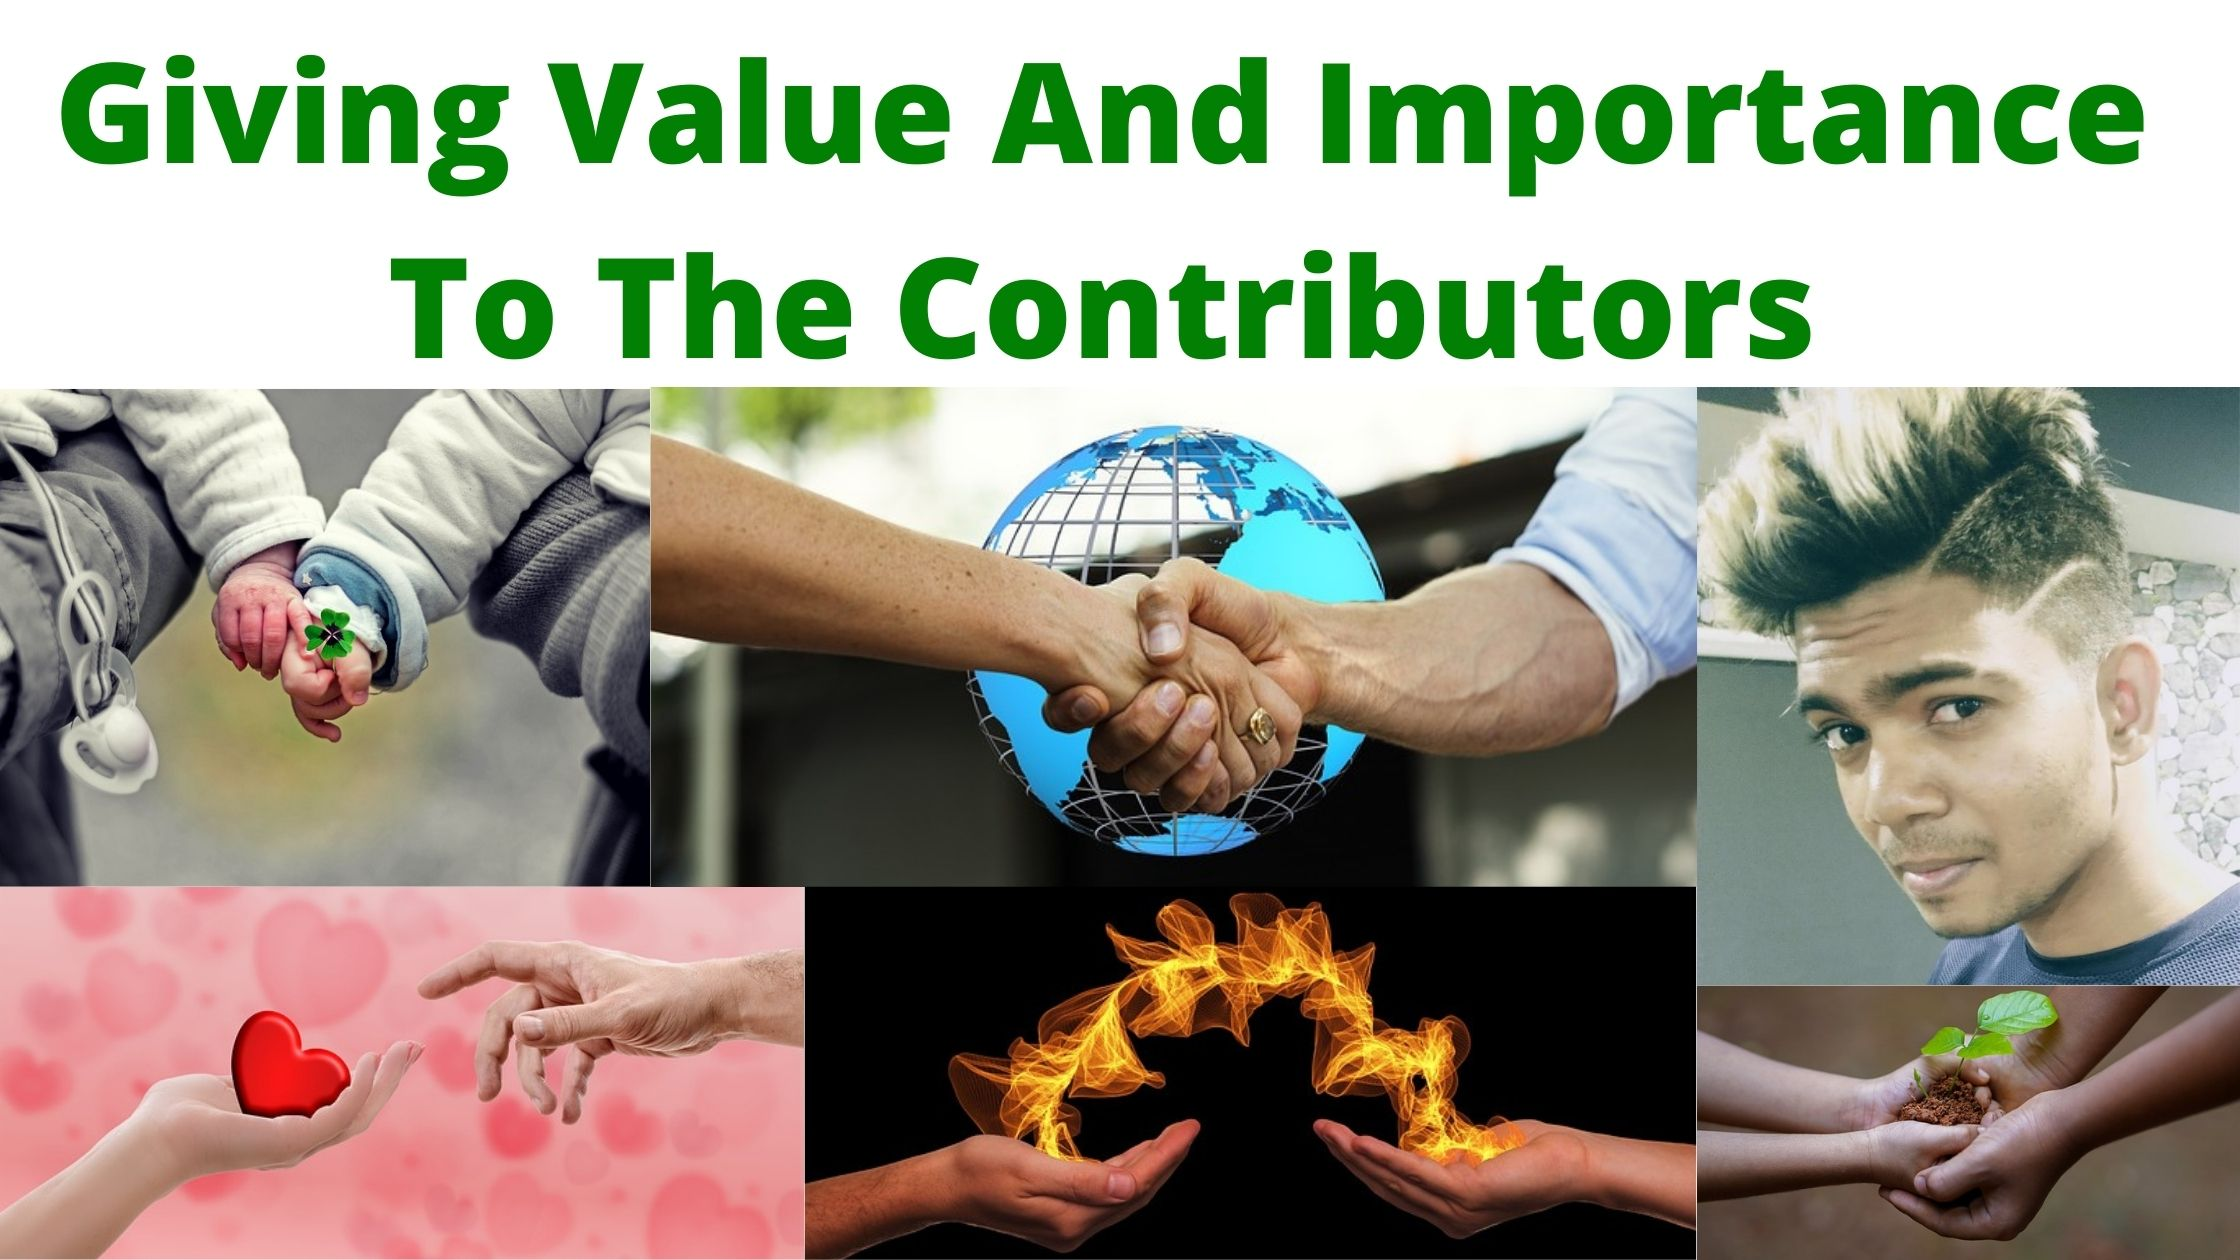 Giving Value And Importance To The Contributors